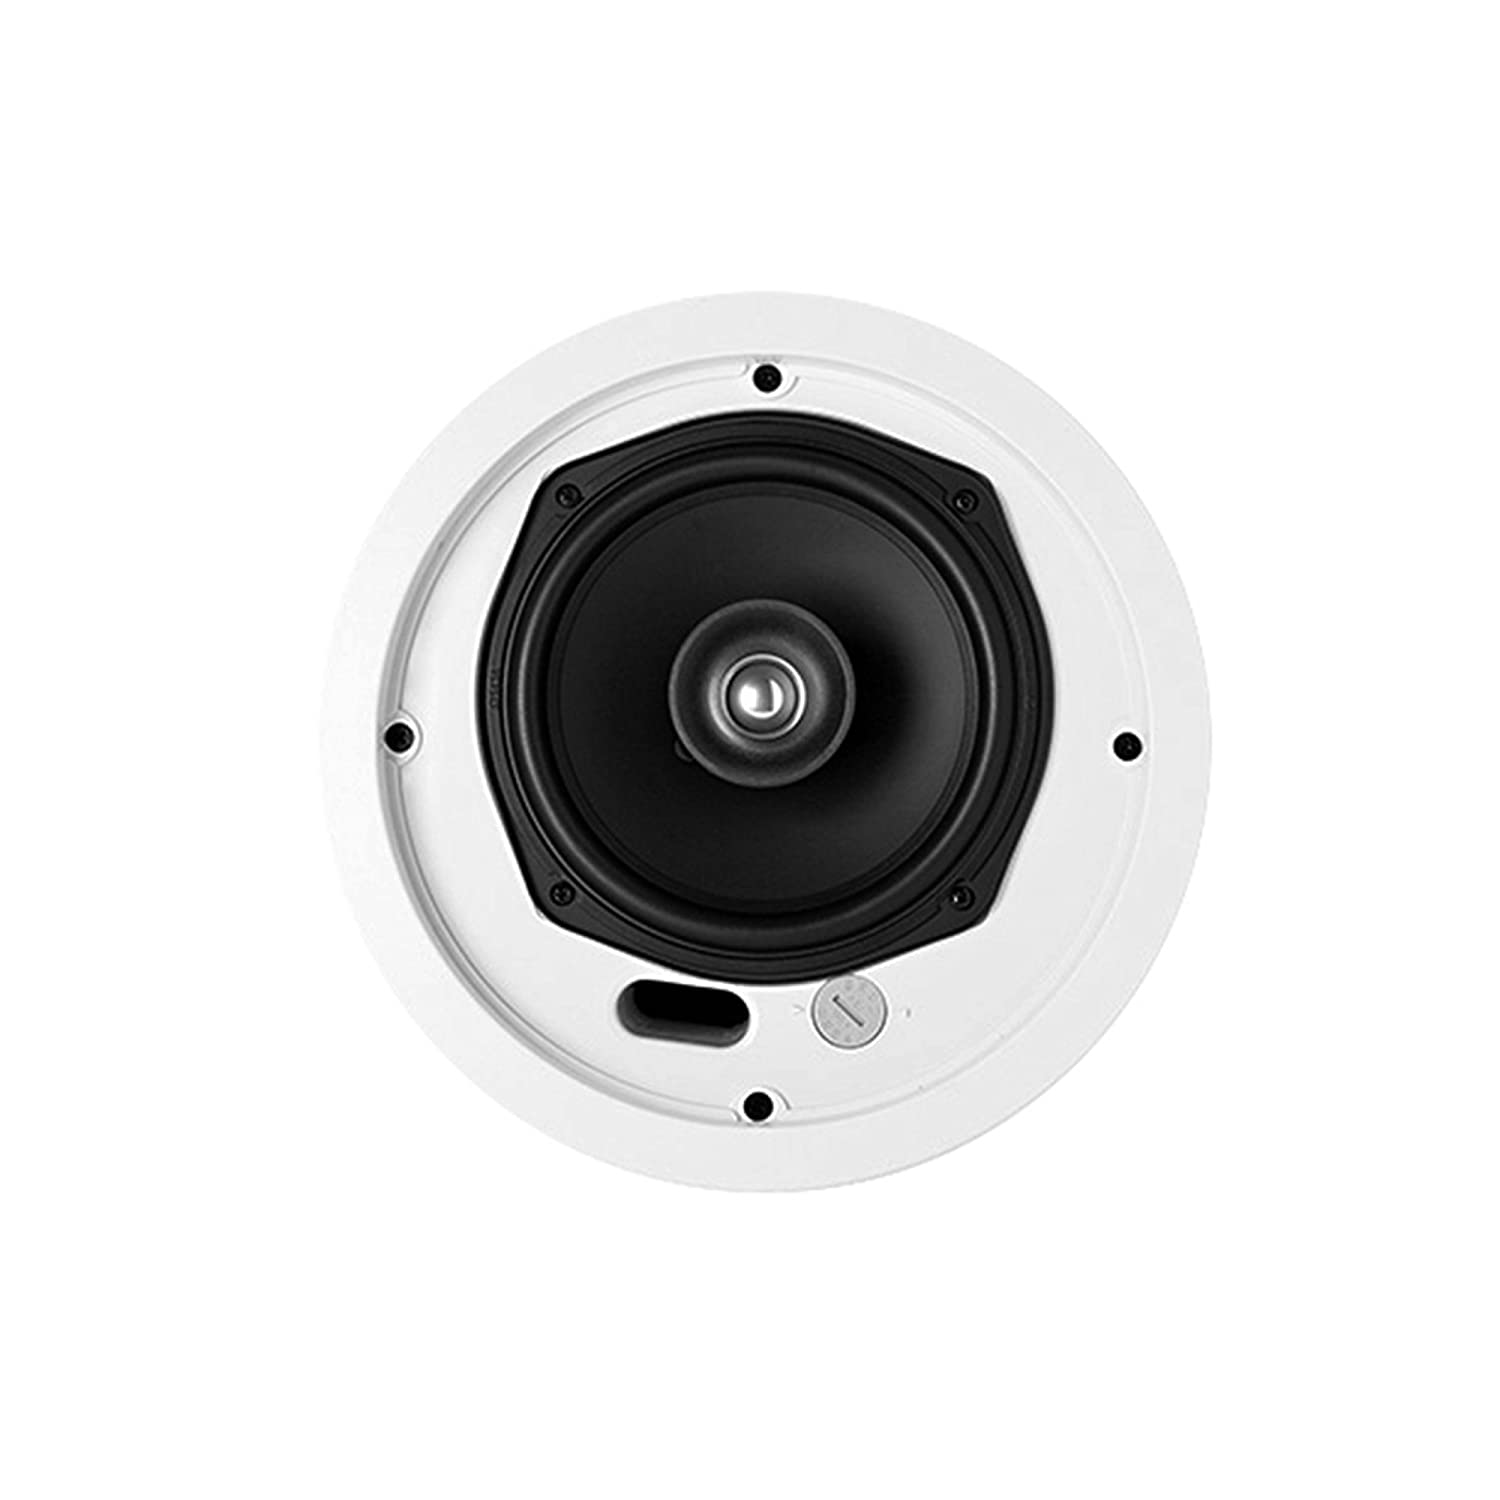 Amazon.com: JBL Control 26CT Two Way Vented Ceiling Speaker with 6.5